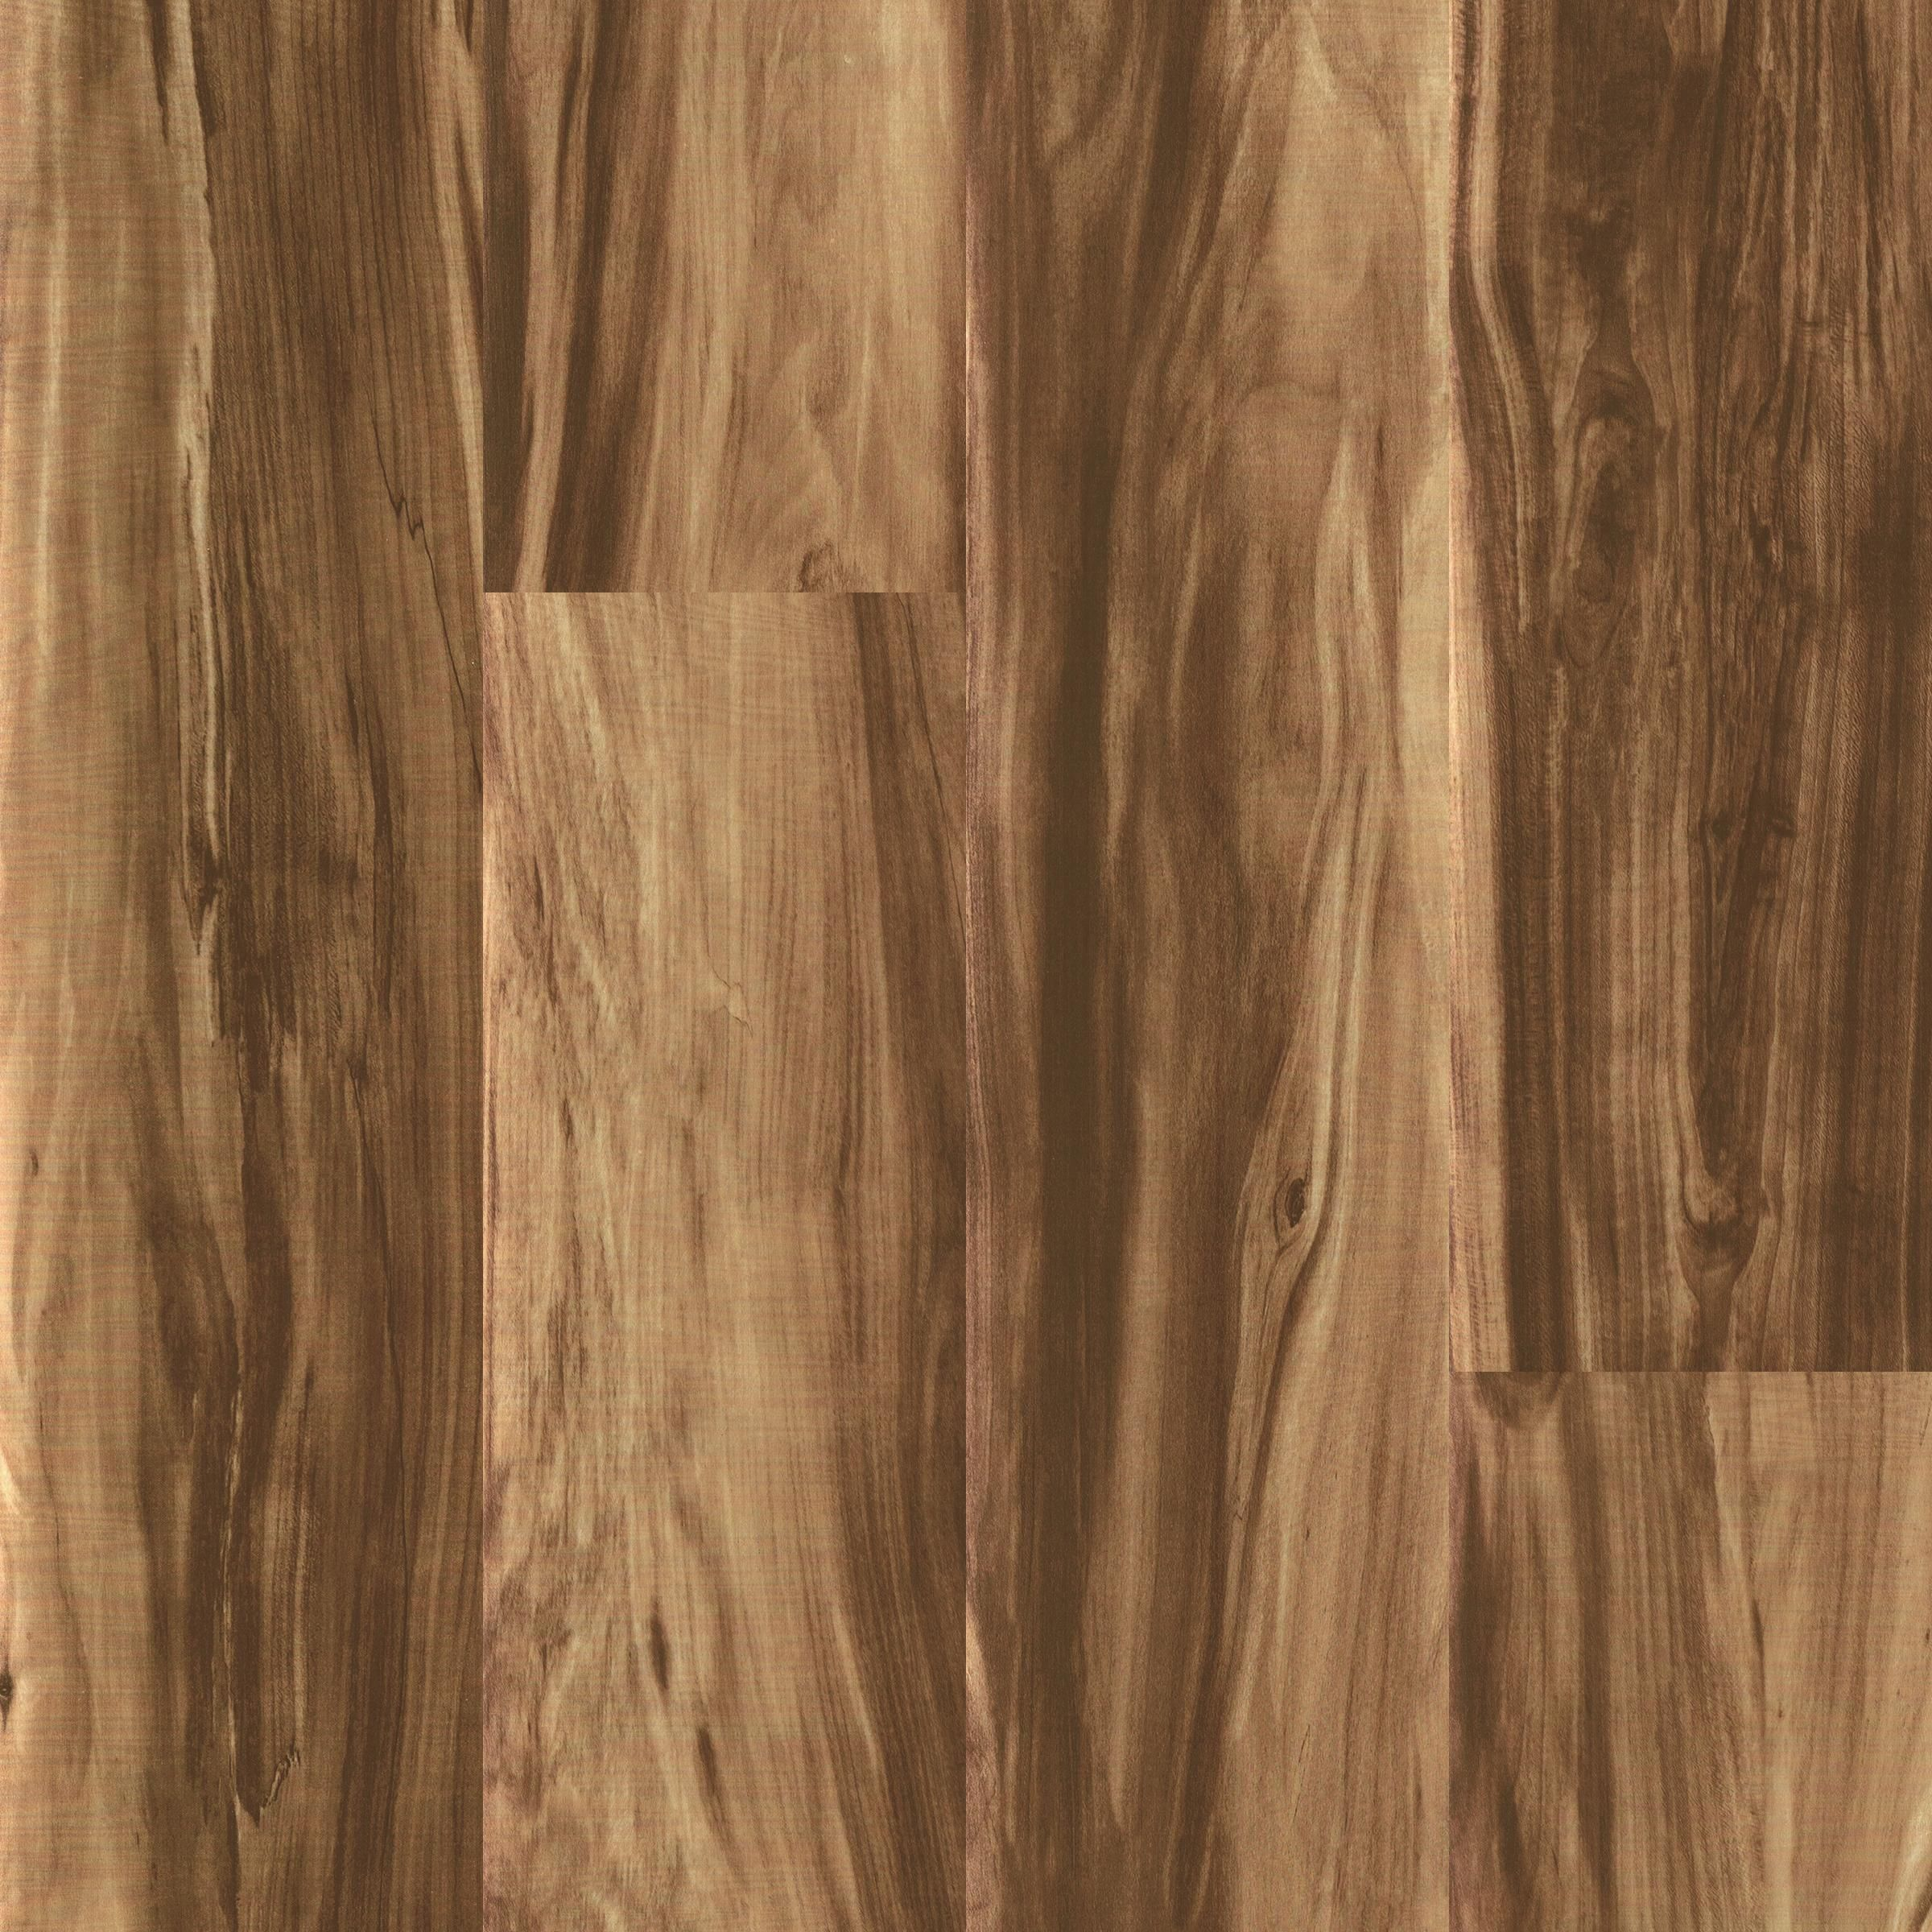 Envee Tacky Back Planks Peel Stick Commercial Flooring Vinyl Flooring Flooring Residential Flooring